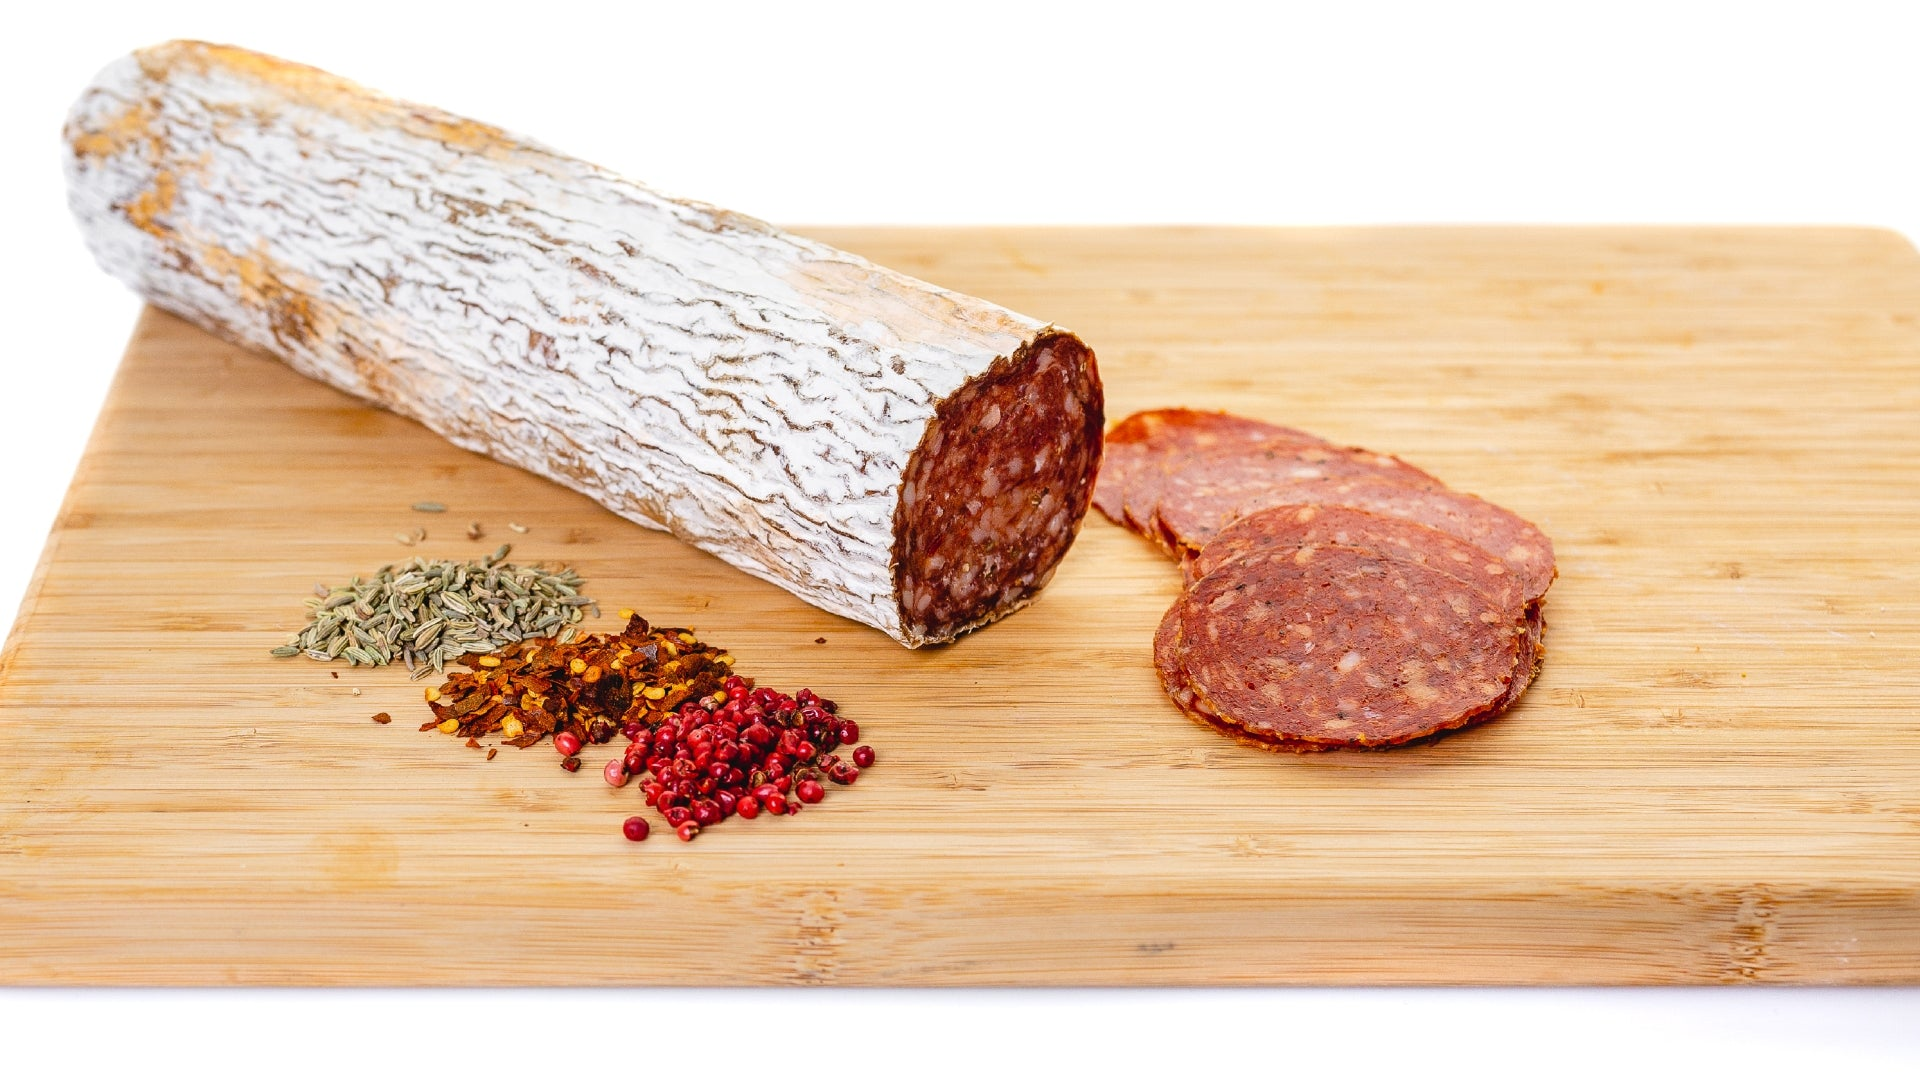 il porcellino salumi's soppressata on a cutting board with slices to the right and spices in the foreground.